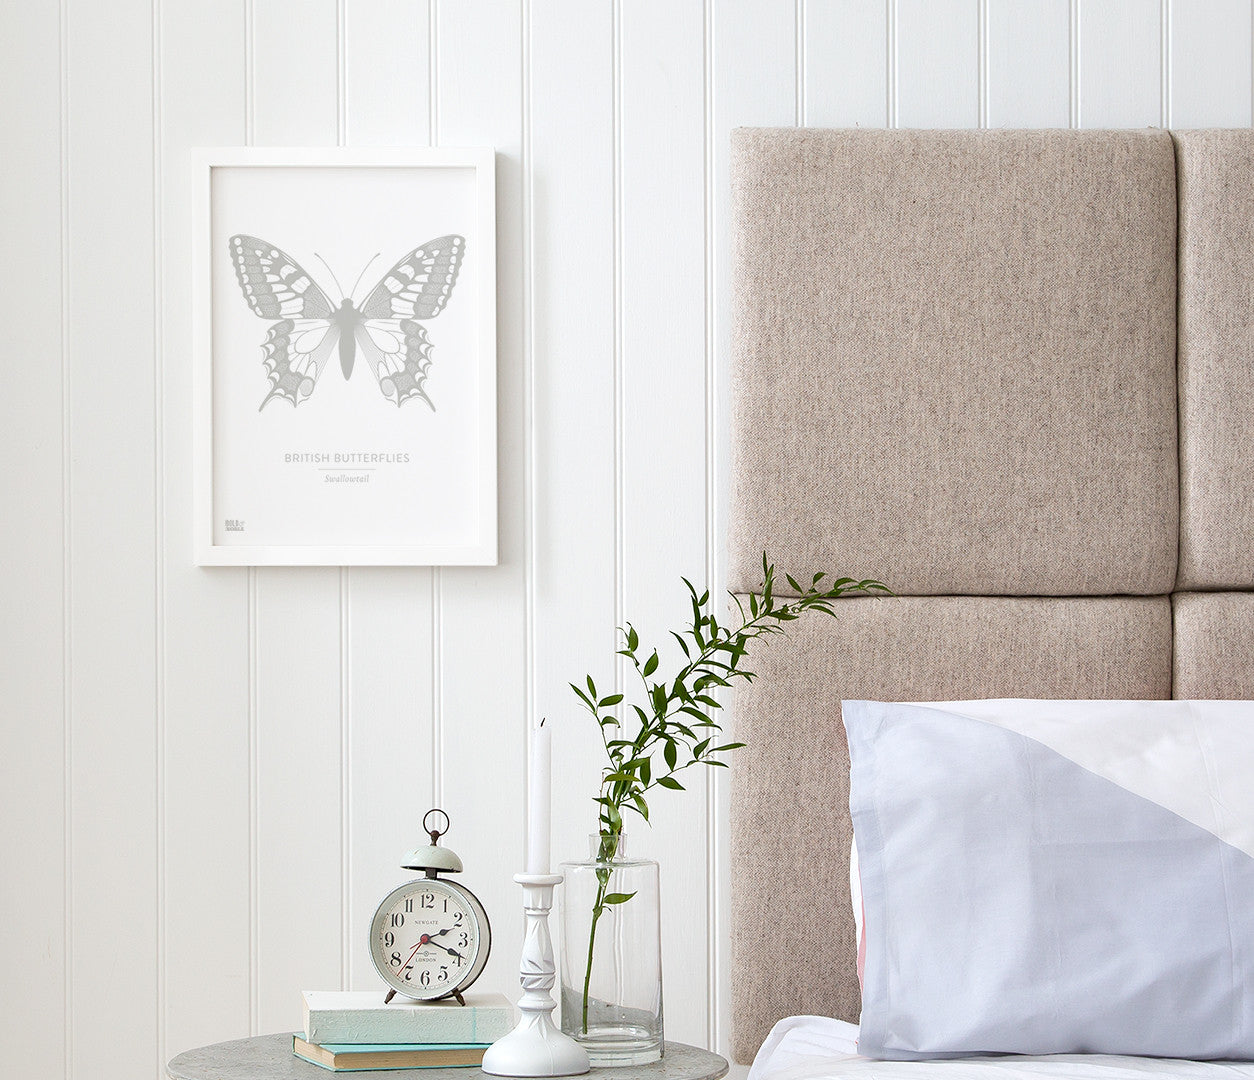 British Butterflies 'Swallowtail' Print in Putty Grey